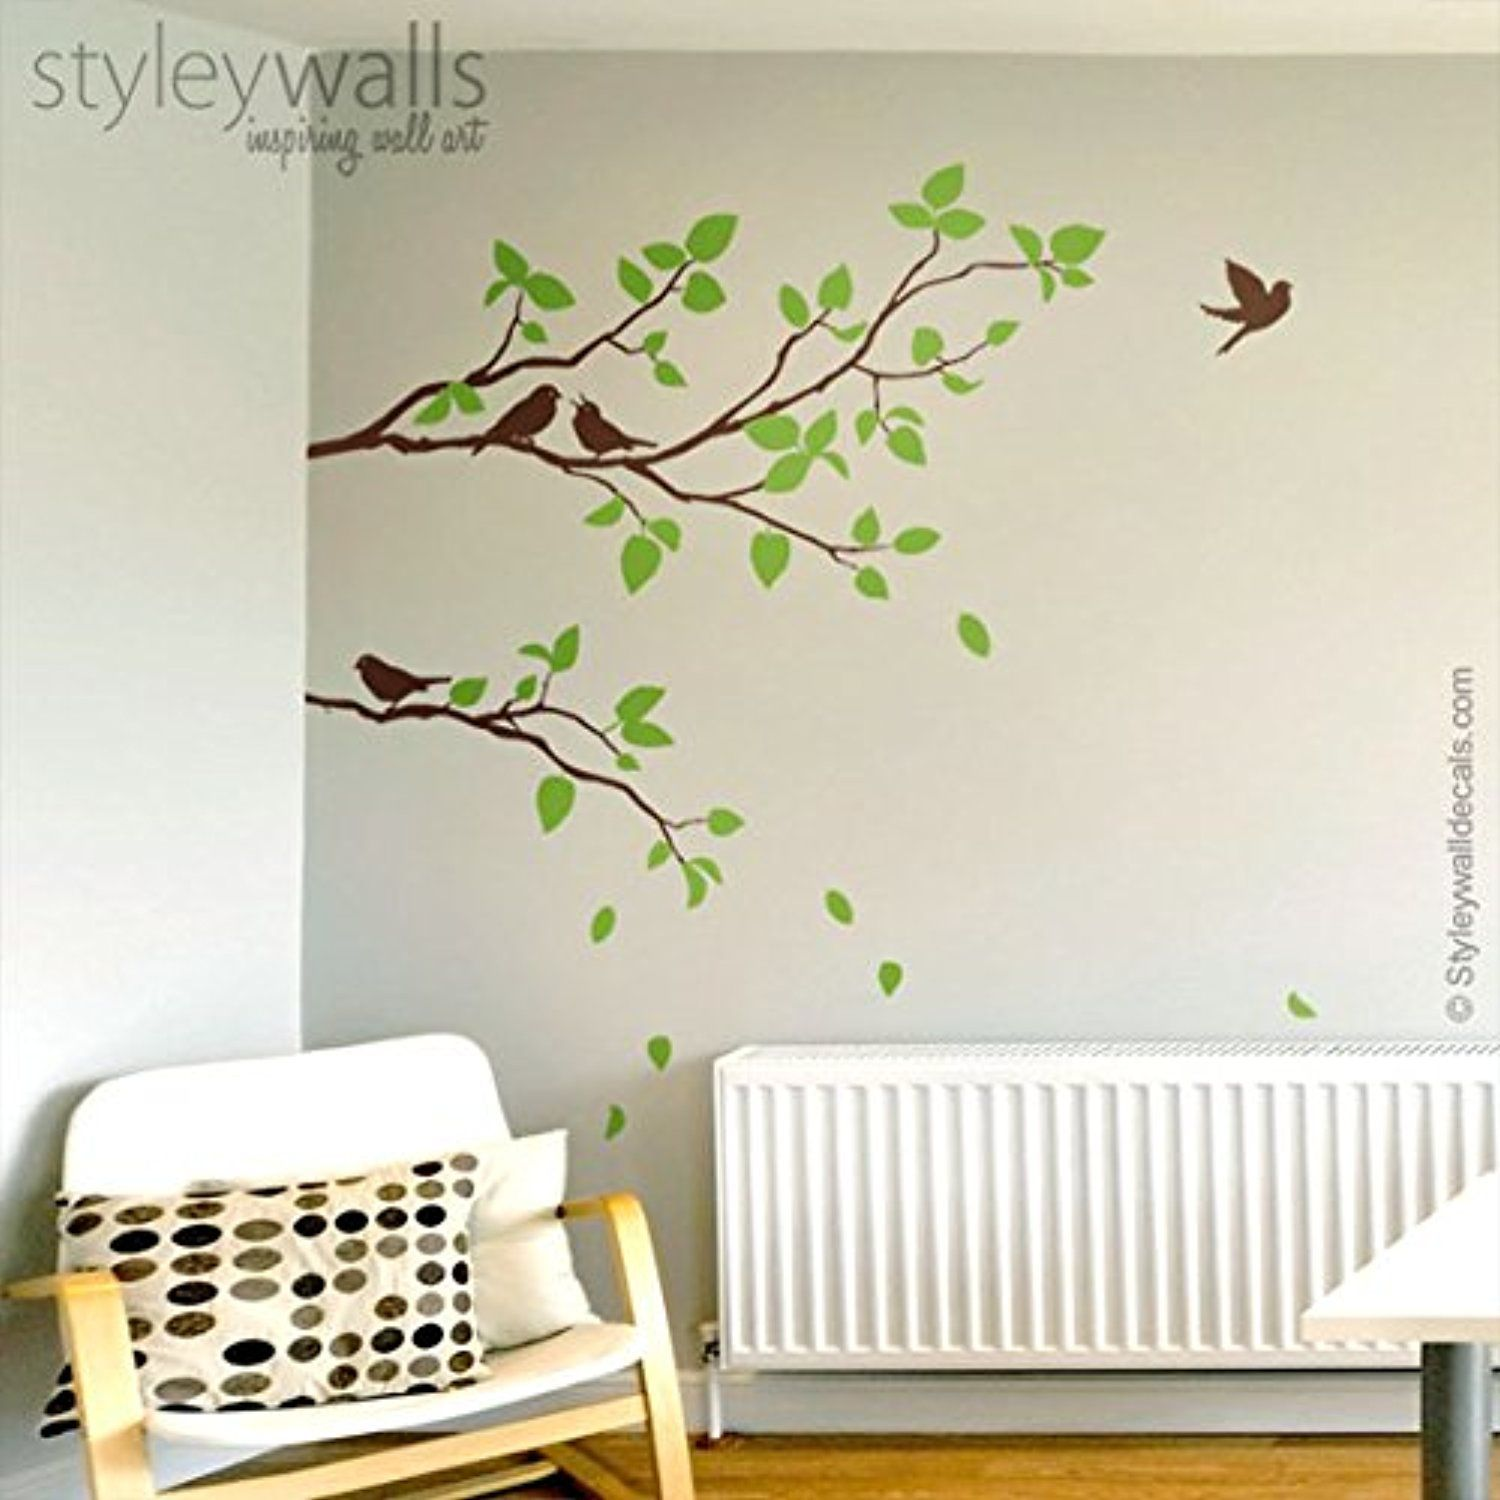 Two spring branches wall decal branches with birds wall decal for two spring branches wall decal branches with birds wall decal for home living room decor amipublicfo Image collections